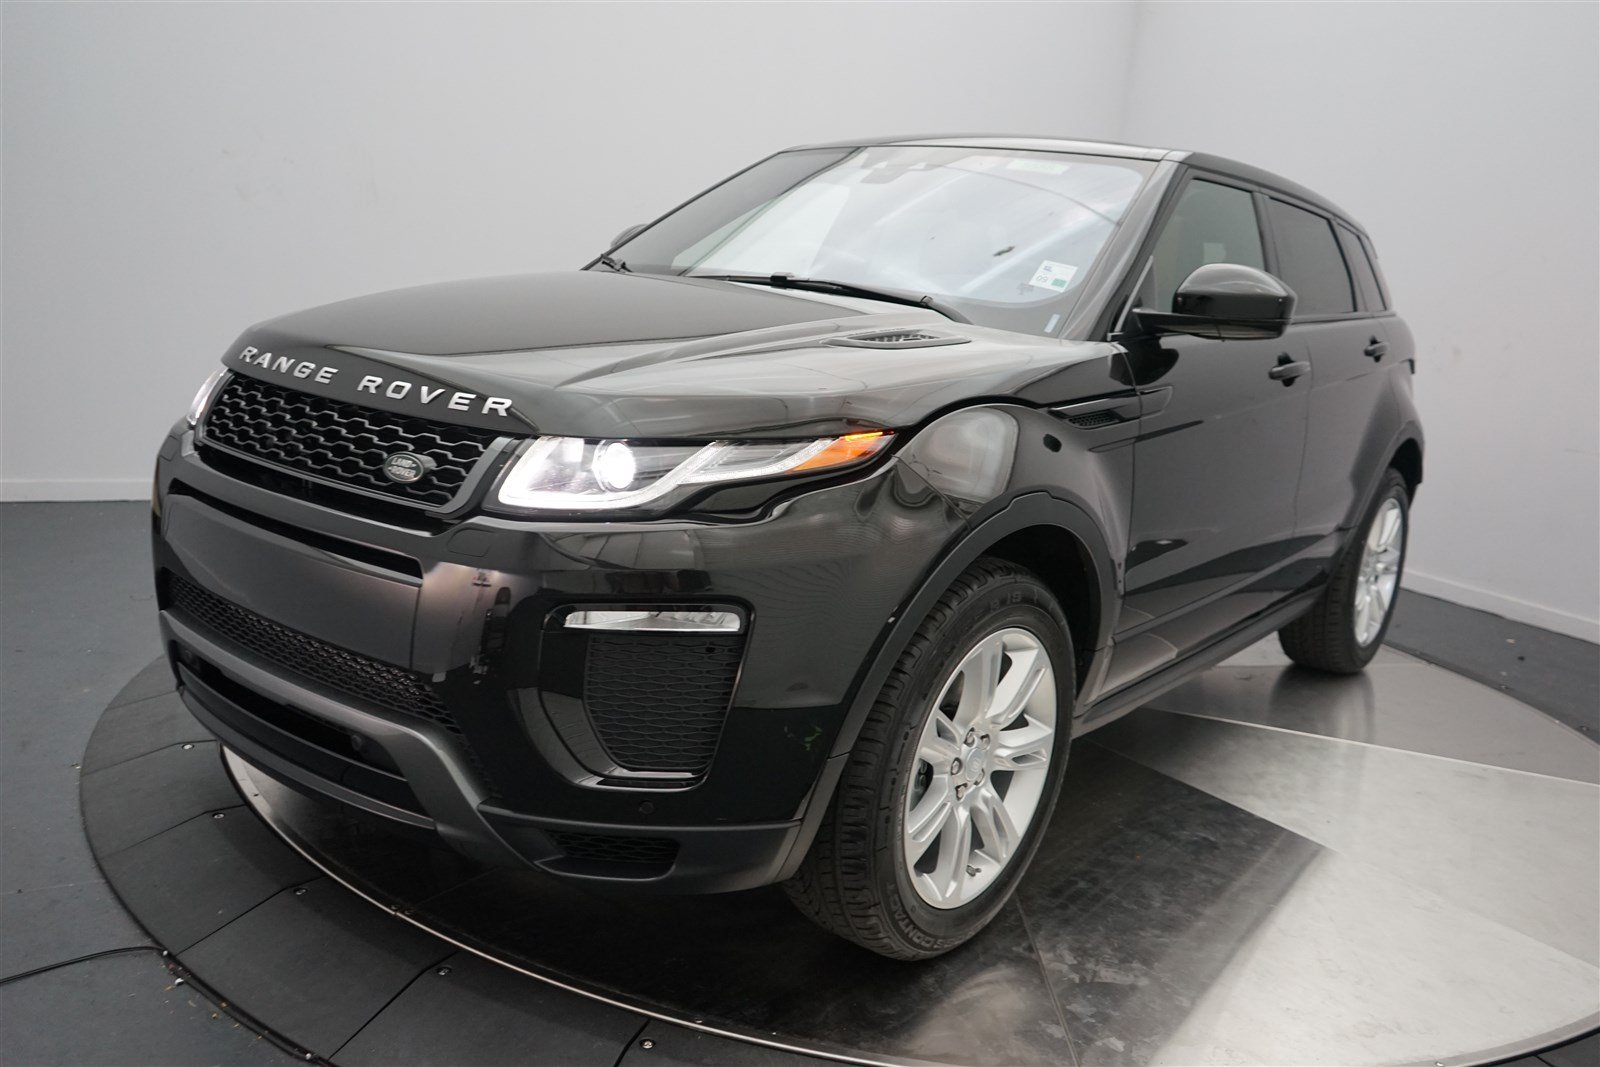 new 2017 land rover range rover evoque hse dynamic 4 door suv in shreveport 5558 land rover. Black Bedroom Furniture Sets. Home Design Ideas